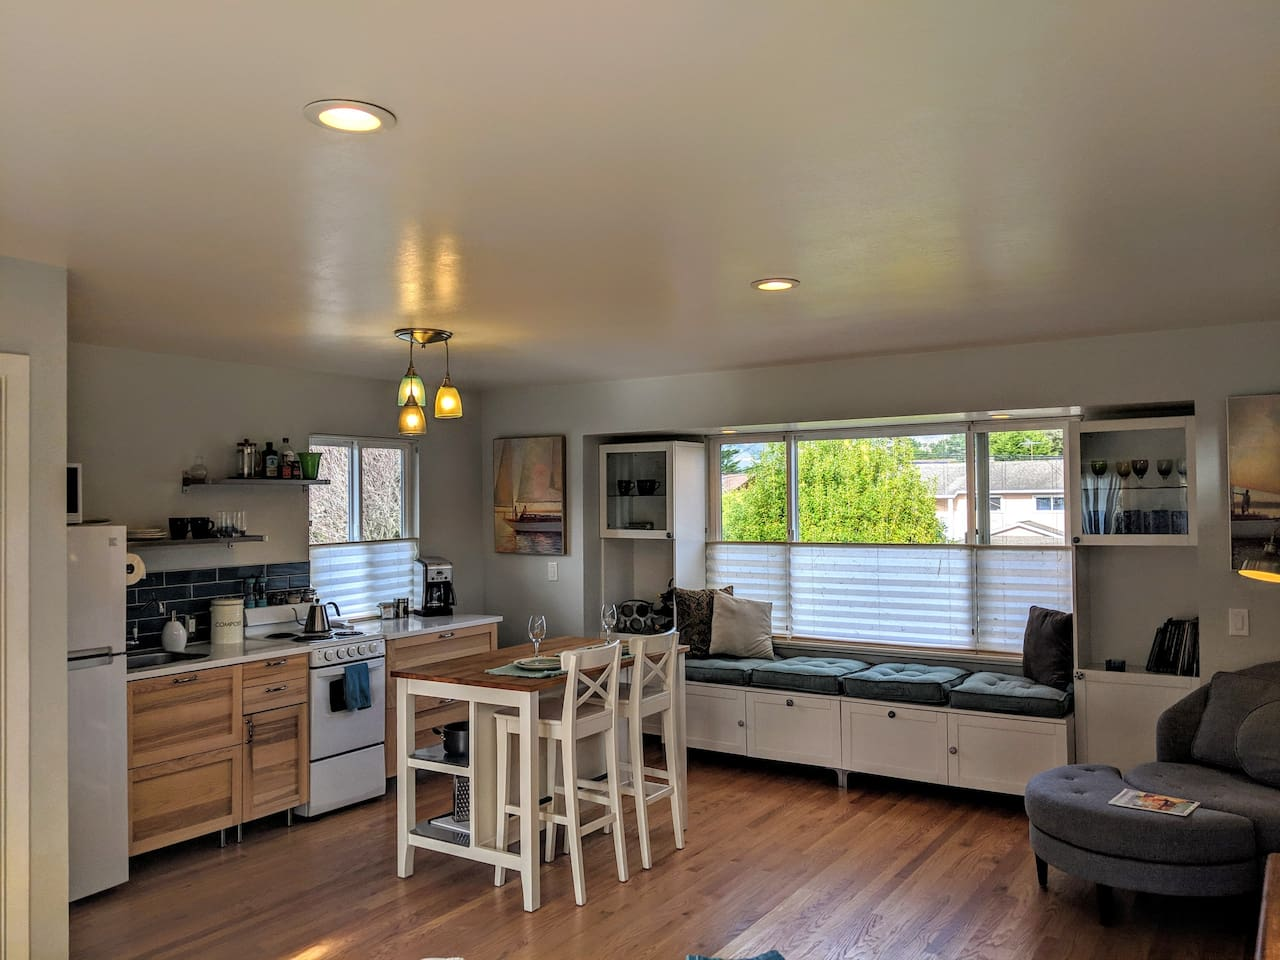 A bright open space with full kitchen, cozy seating, and all the amenities you could ask for awaits.